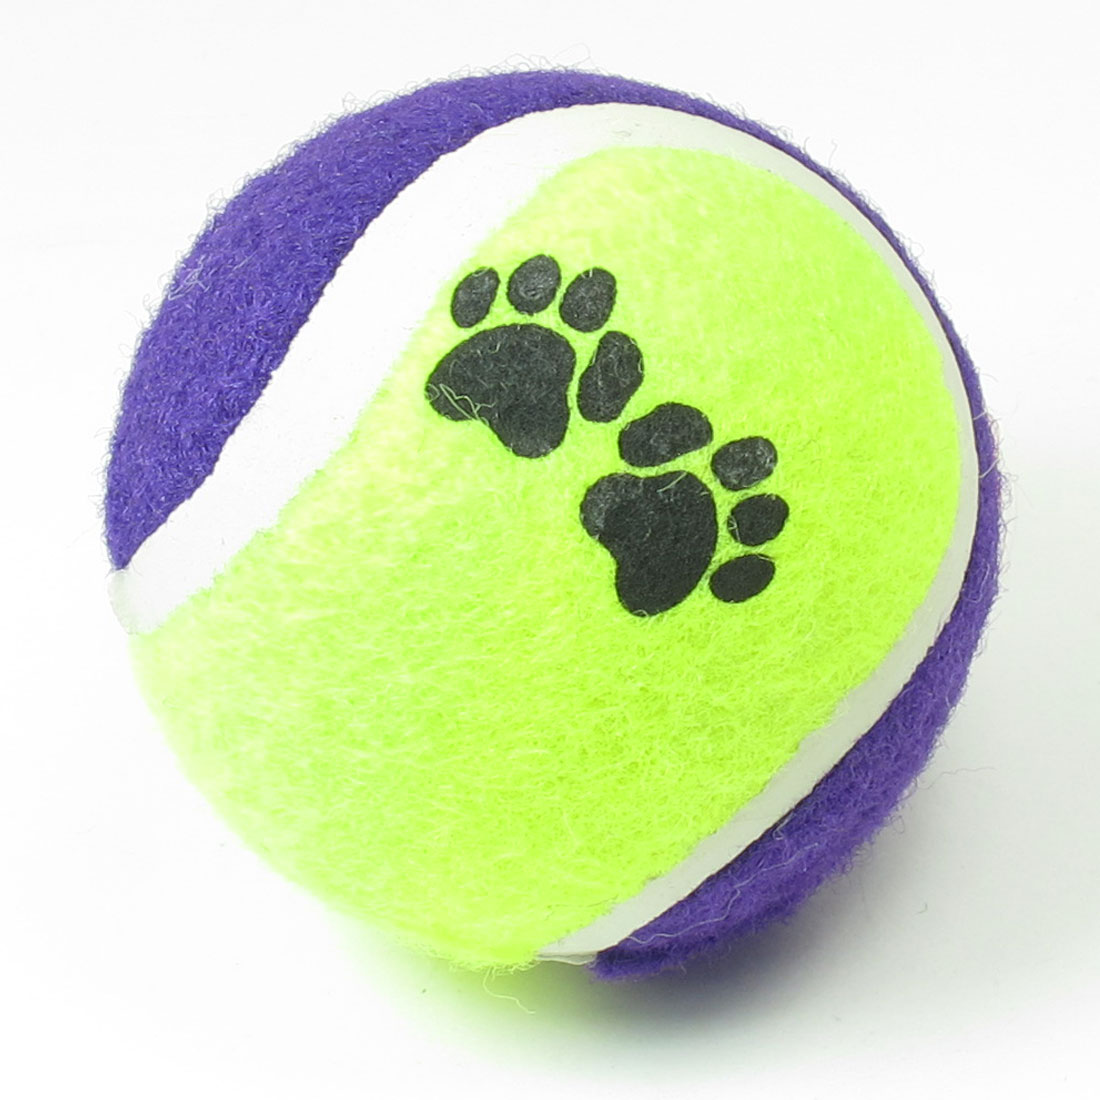 Dog Paw Print Purple Yellow Green Catch Fetch Tennis Ball Toy for Cat Pet